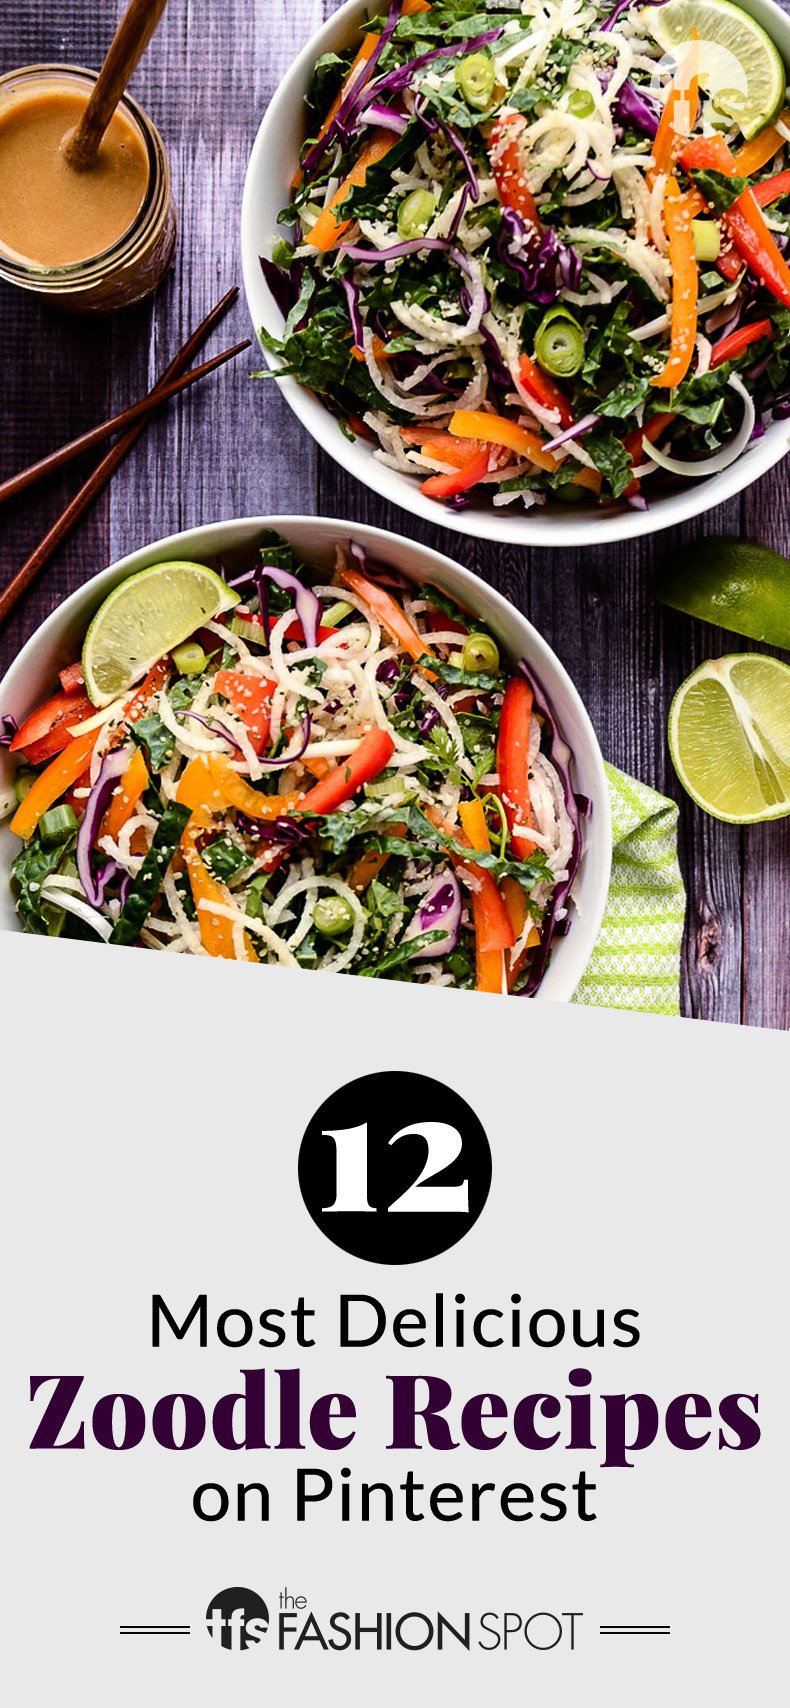 12 Seriously Delicious Zoodle Recipes From Pinterest